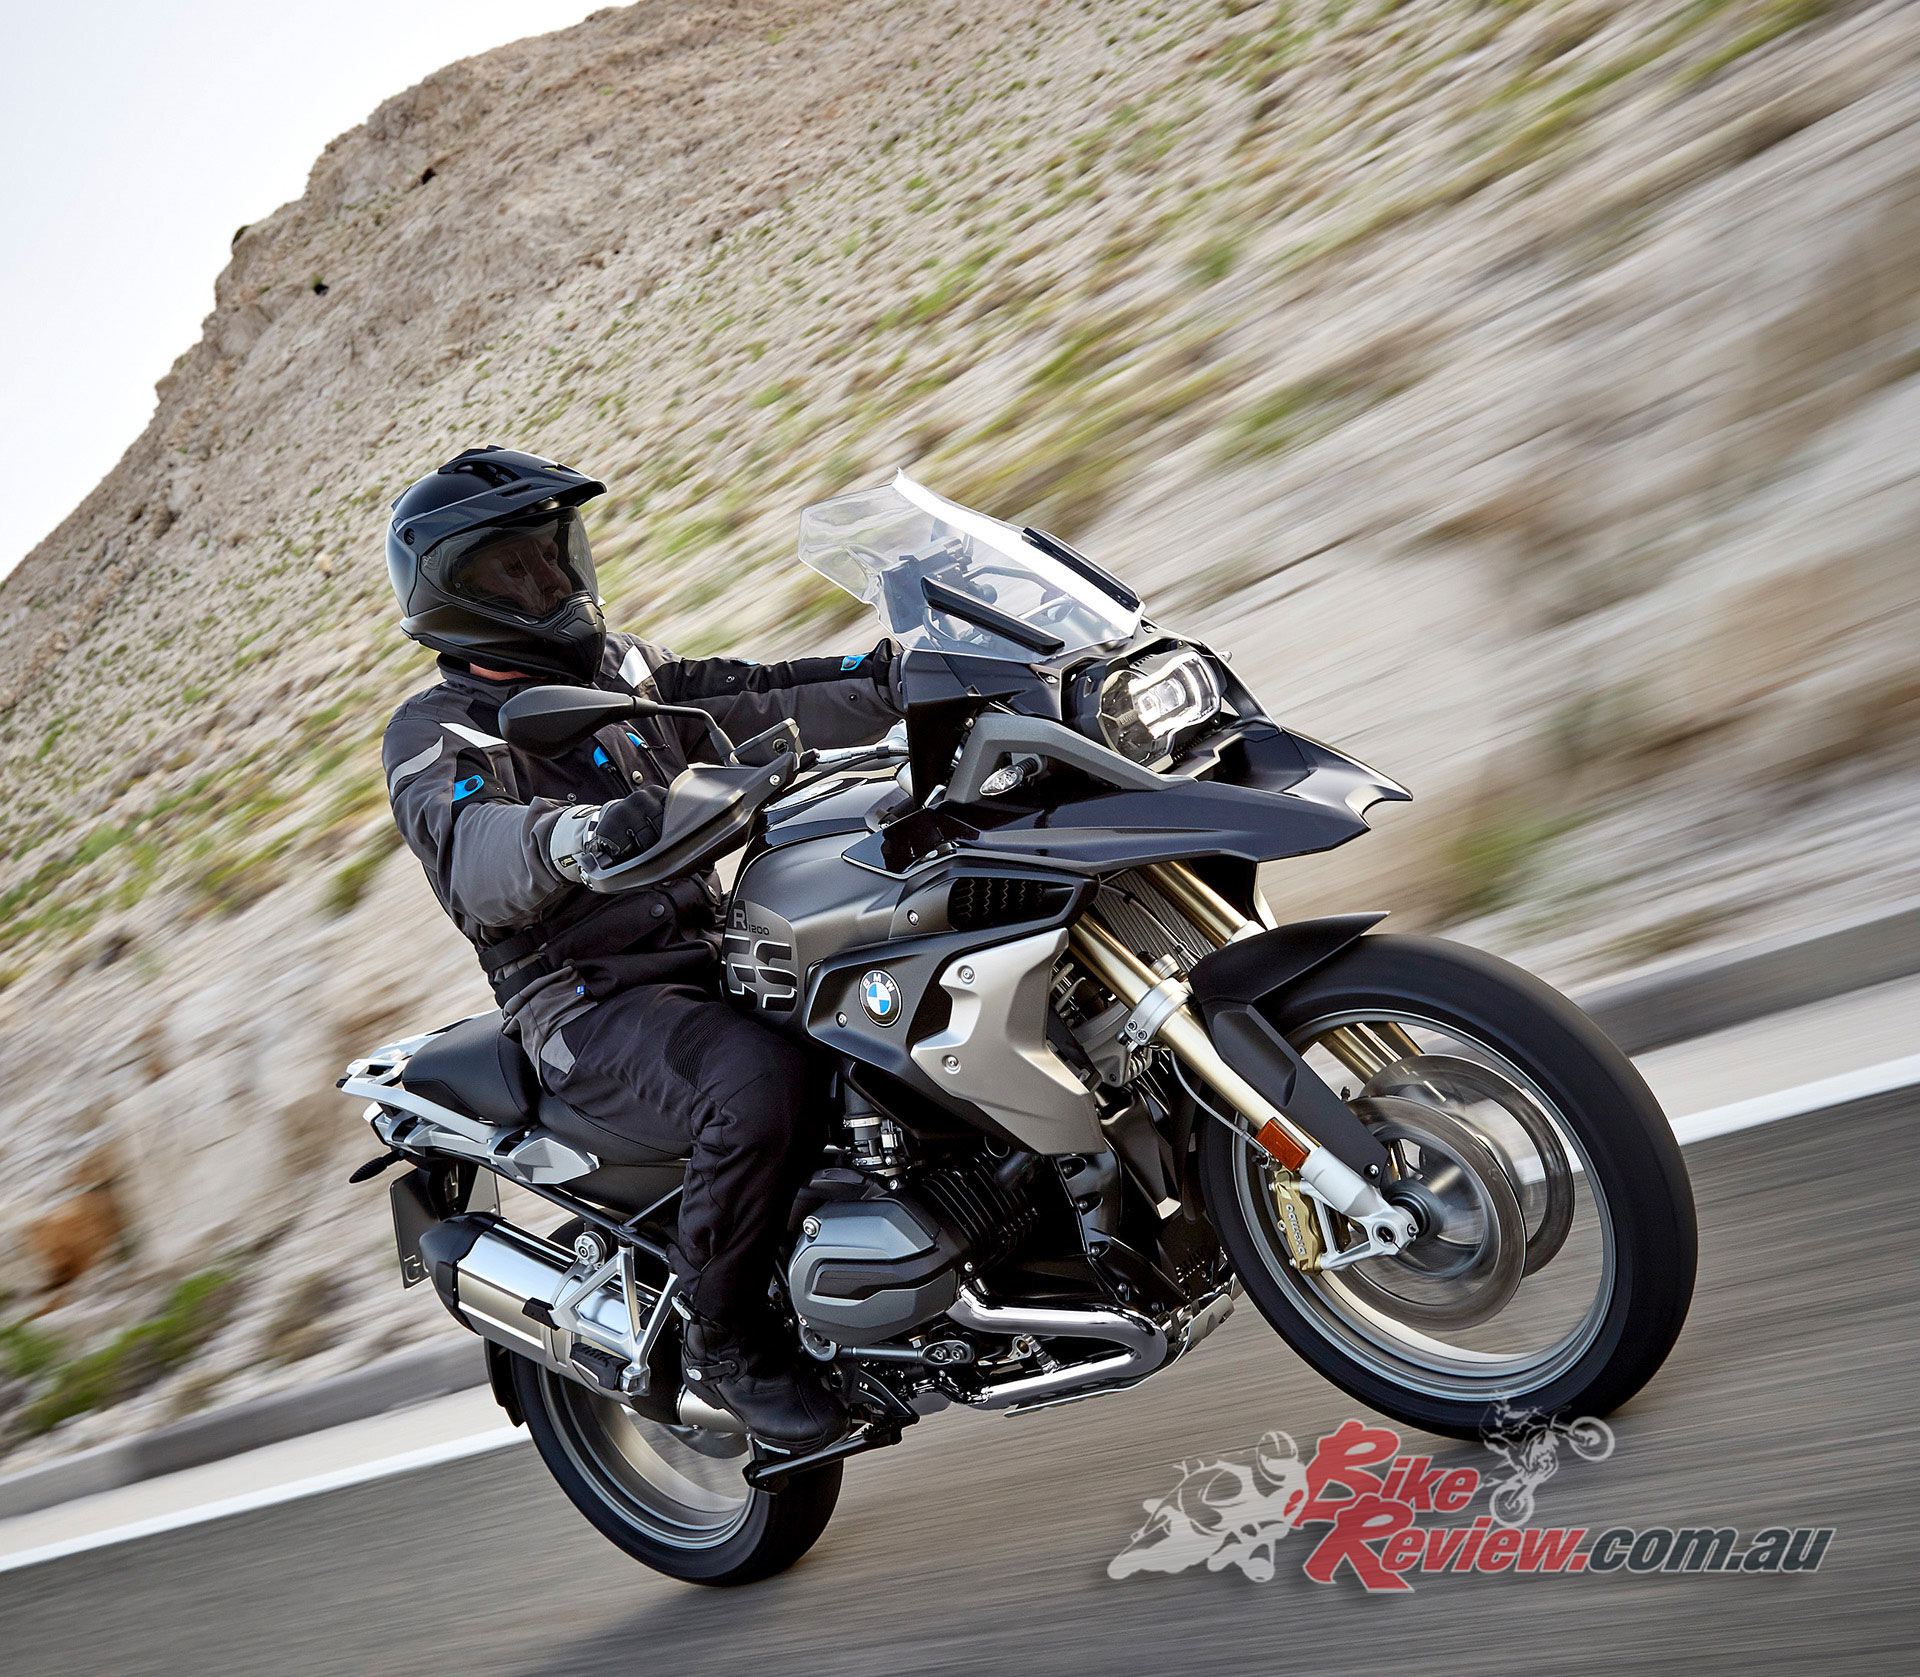 2017 BMW R 1200 GS unveiled at EICMA - Bike Review